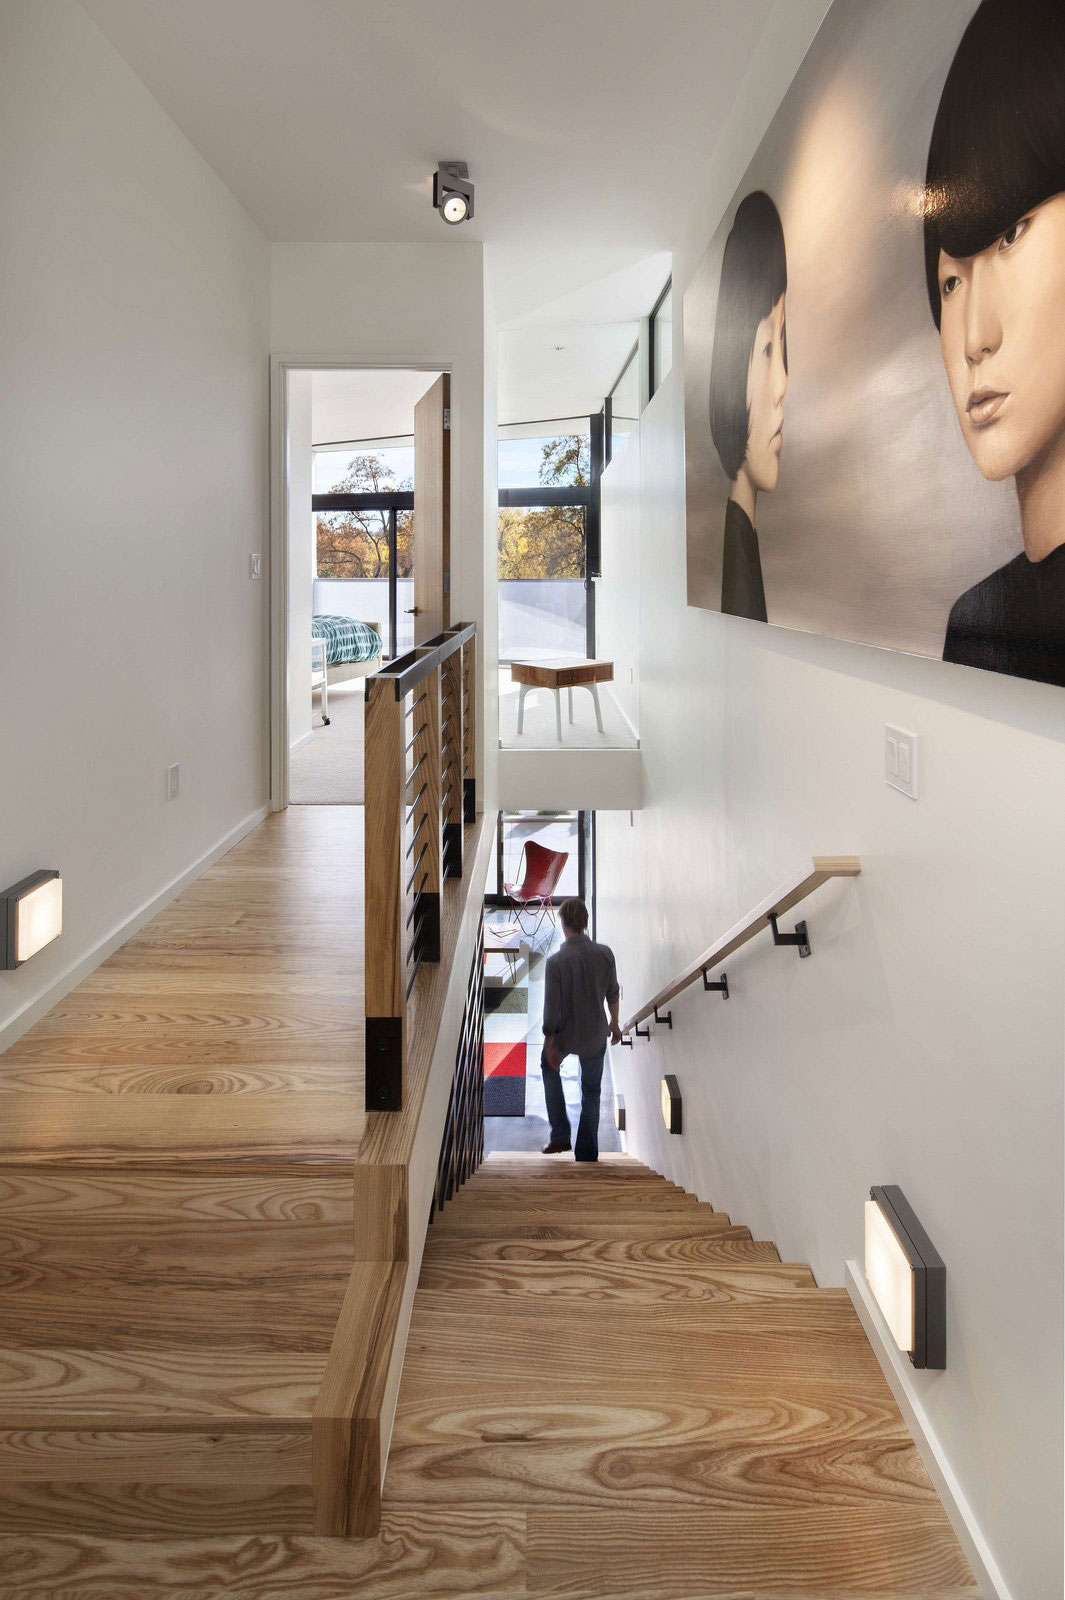 Wooden Flooring, Stairs, Art, Stylish Townhomes near Boulder, Colorado